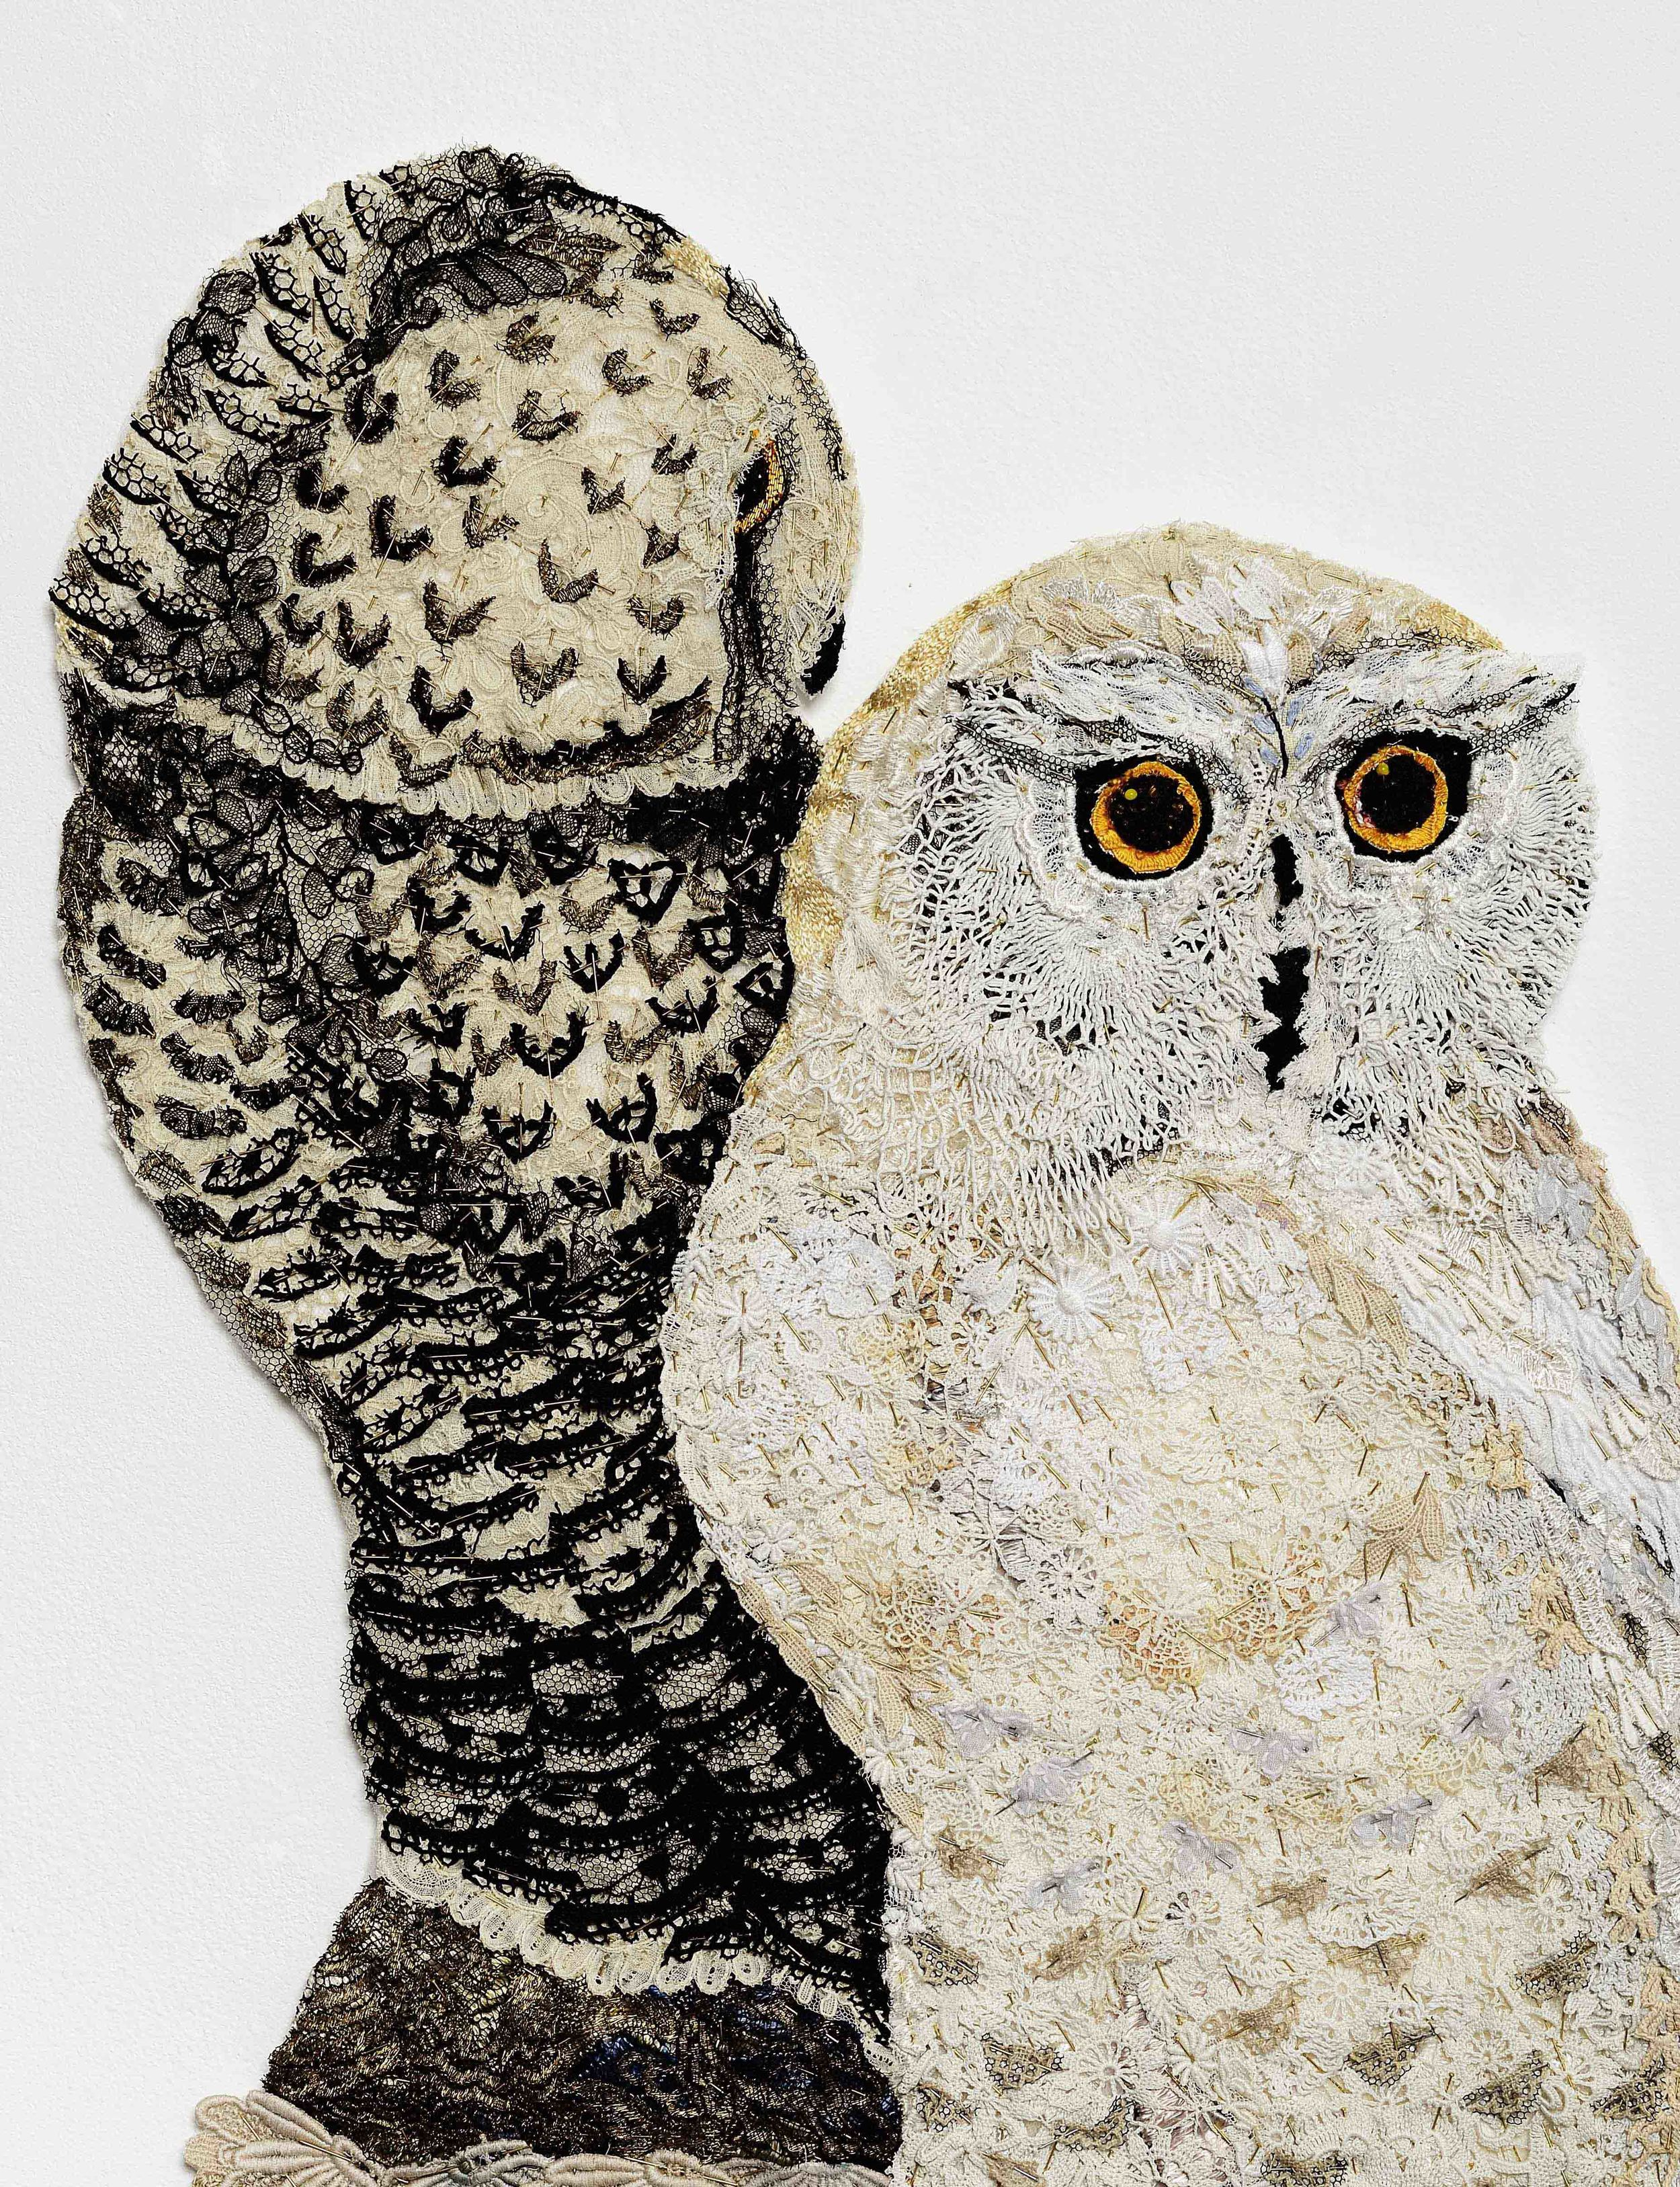 Detail - Bubo & Snow 2014 after Edward Lear 1832